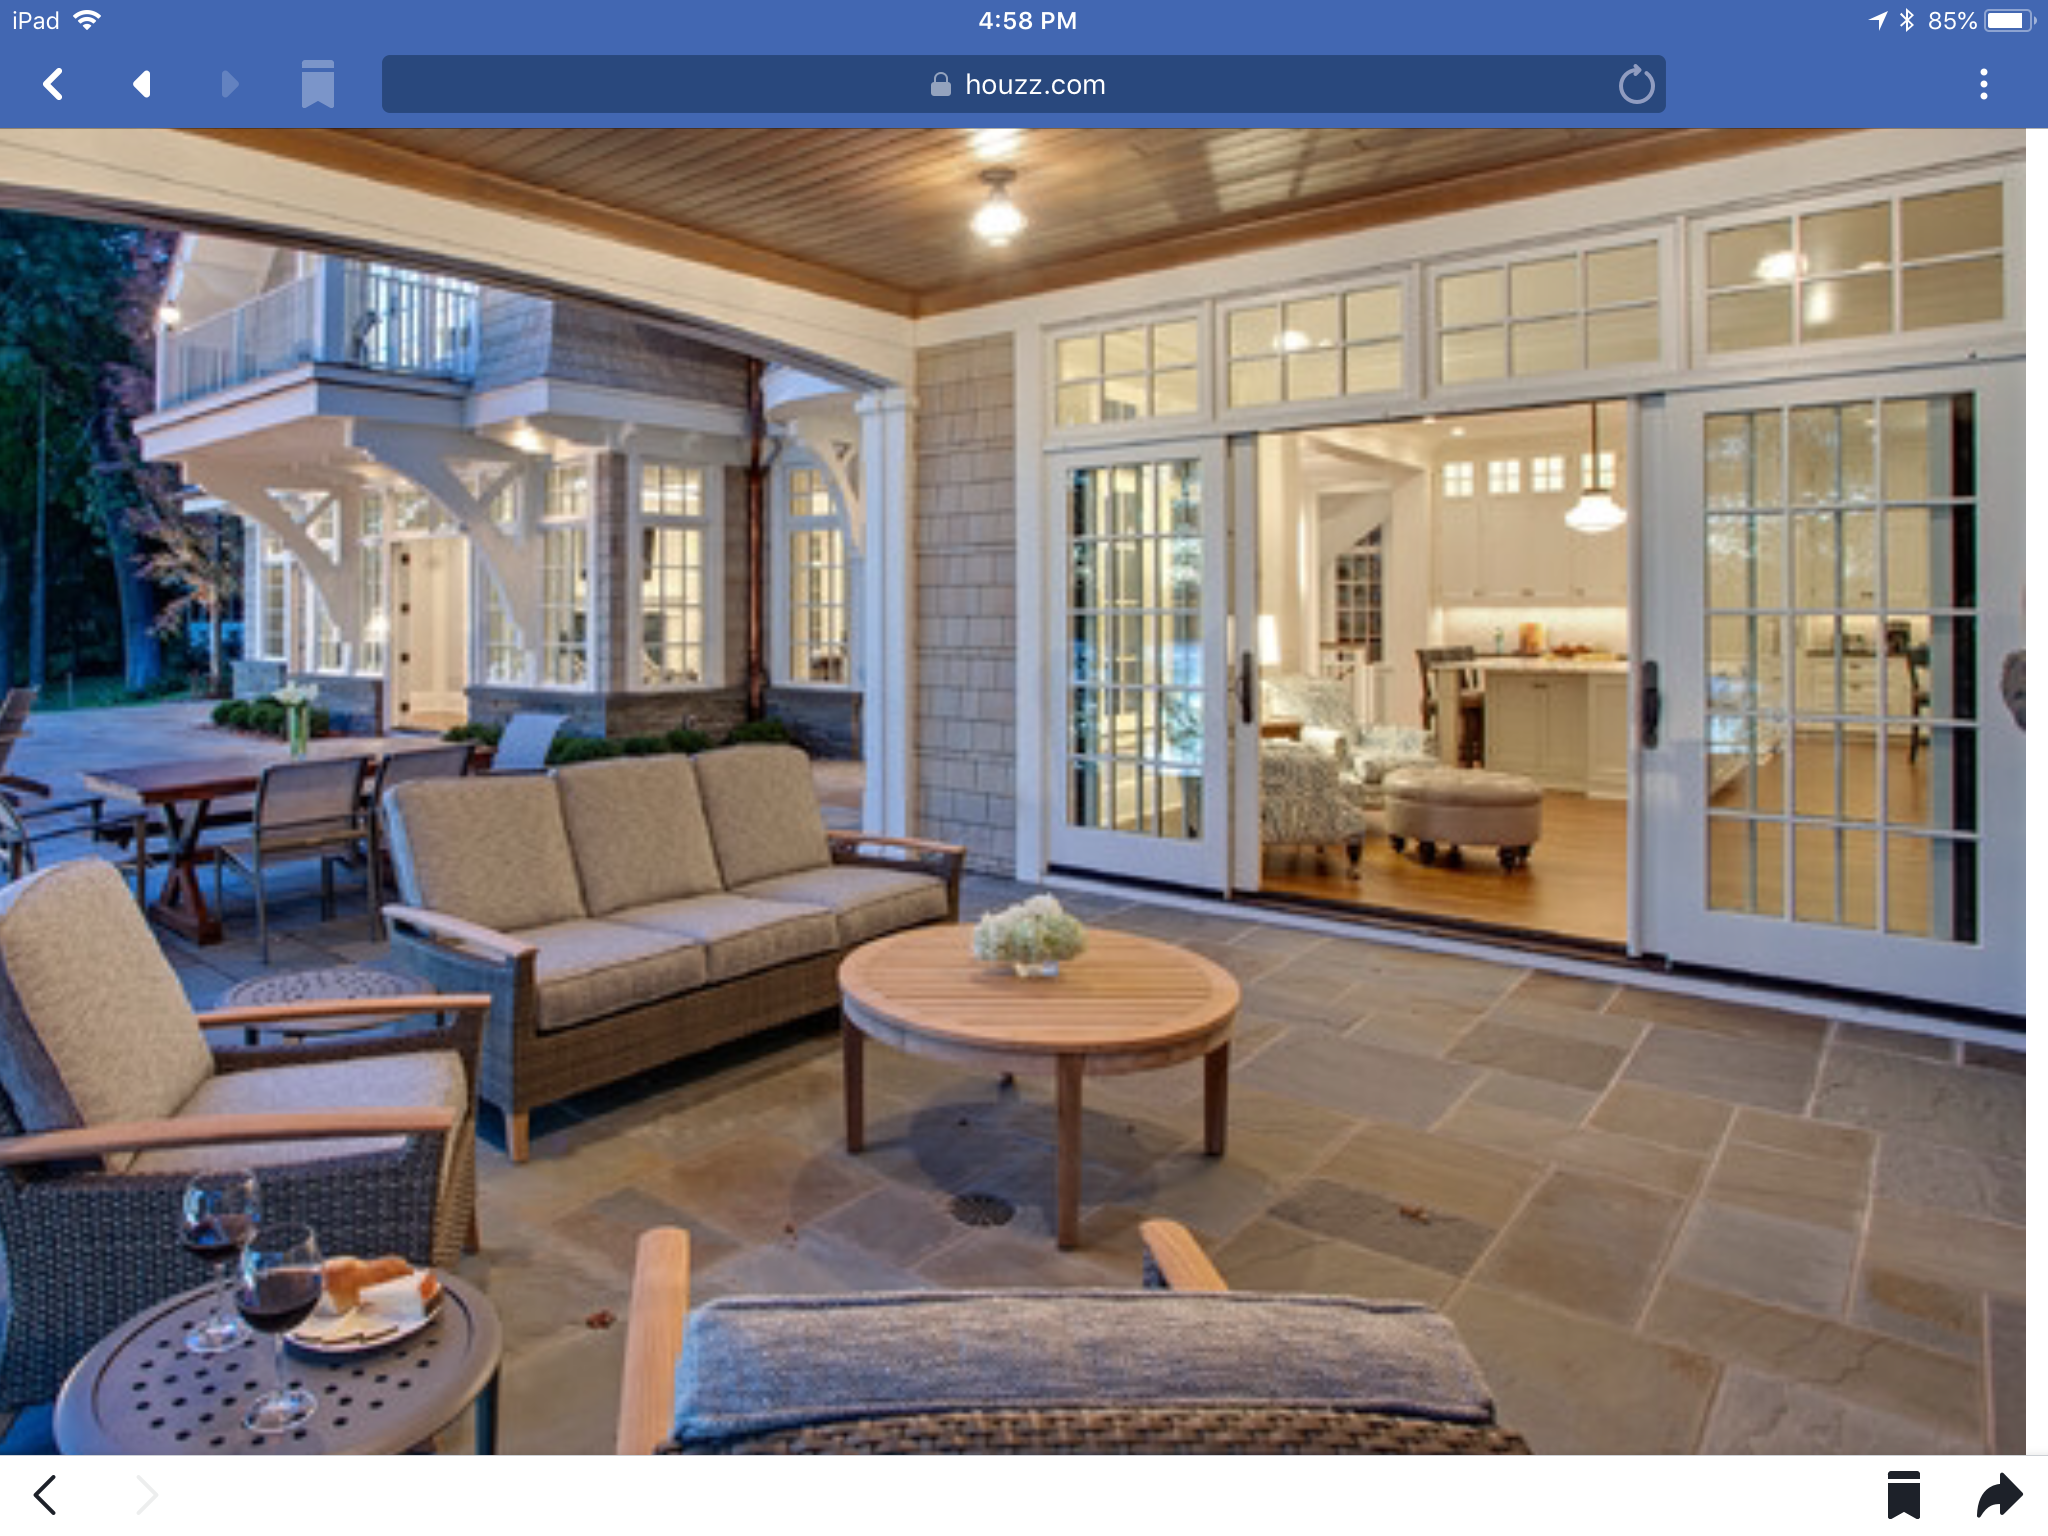 3 season porch window ideas  pin by dan on cottage in   pinterest  patio outdoor rooms and